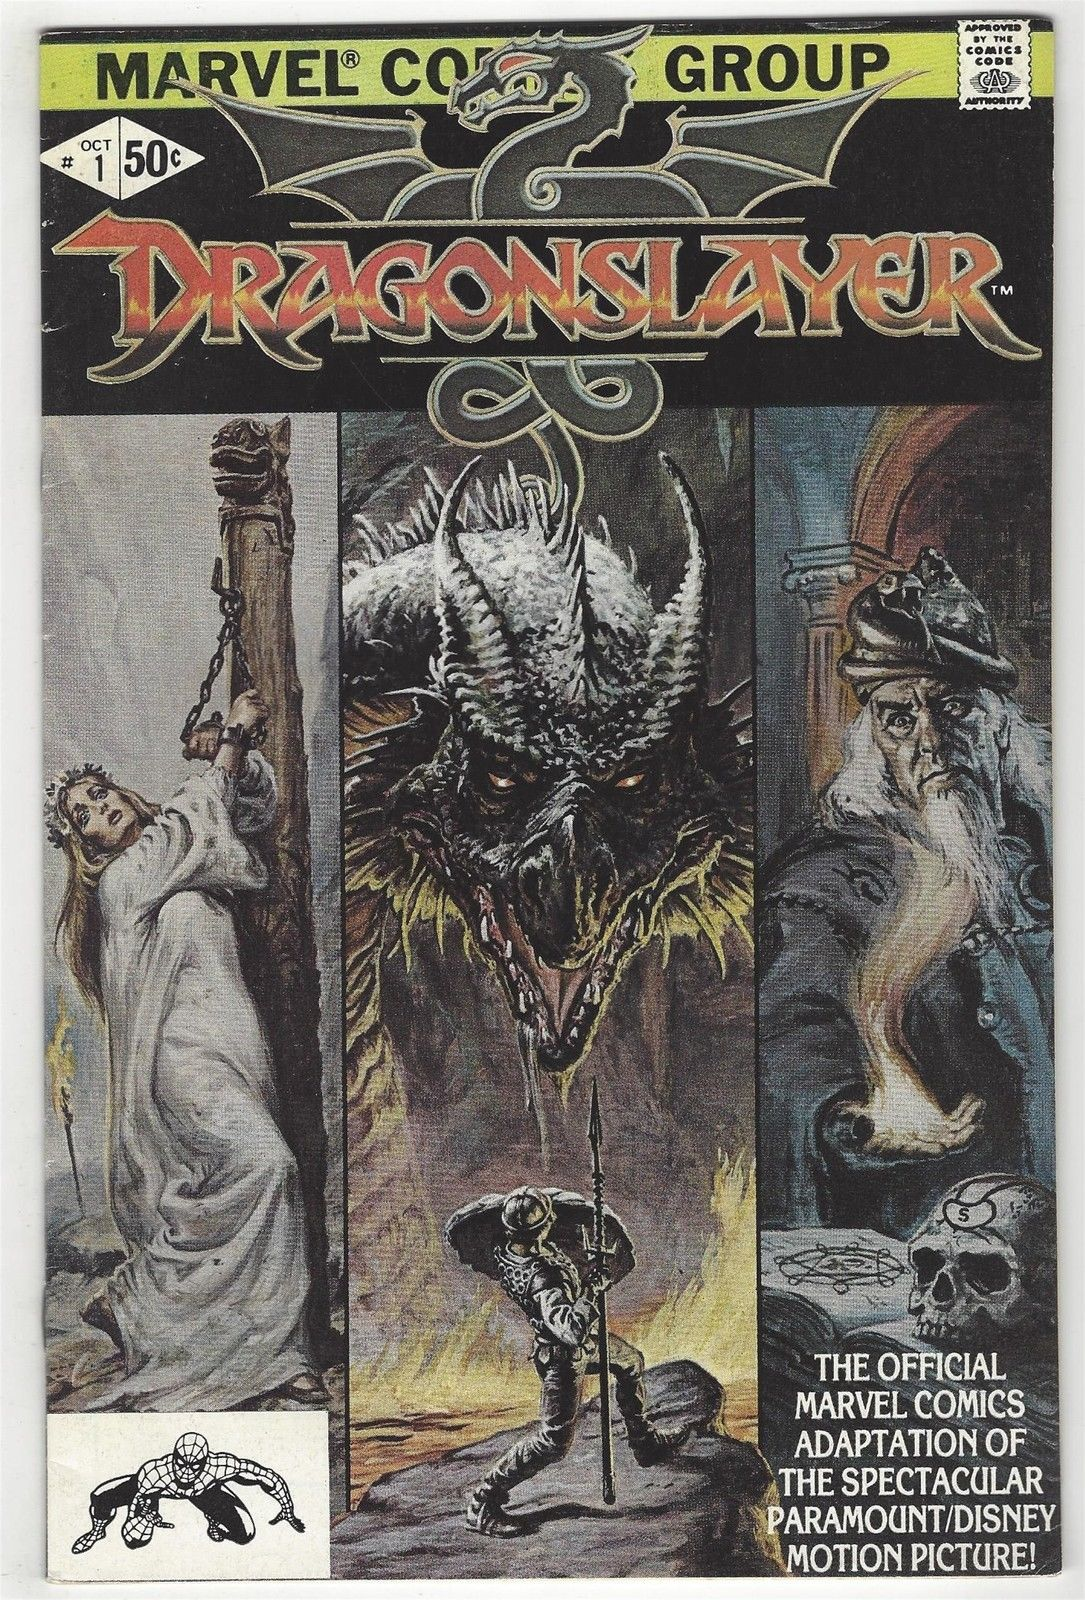 Dragonslayer # 1